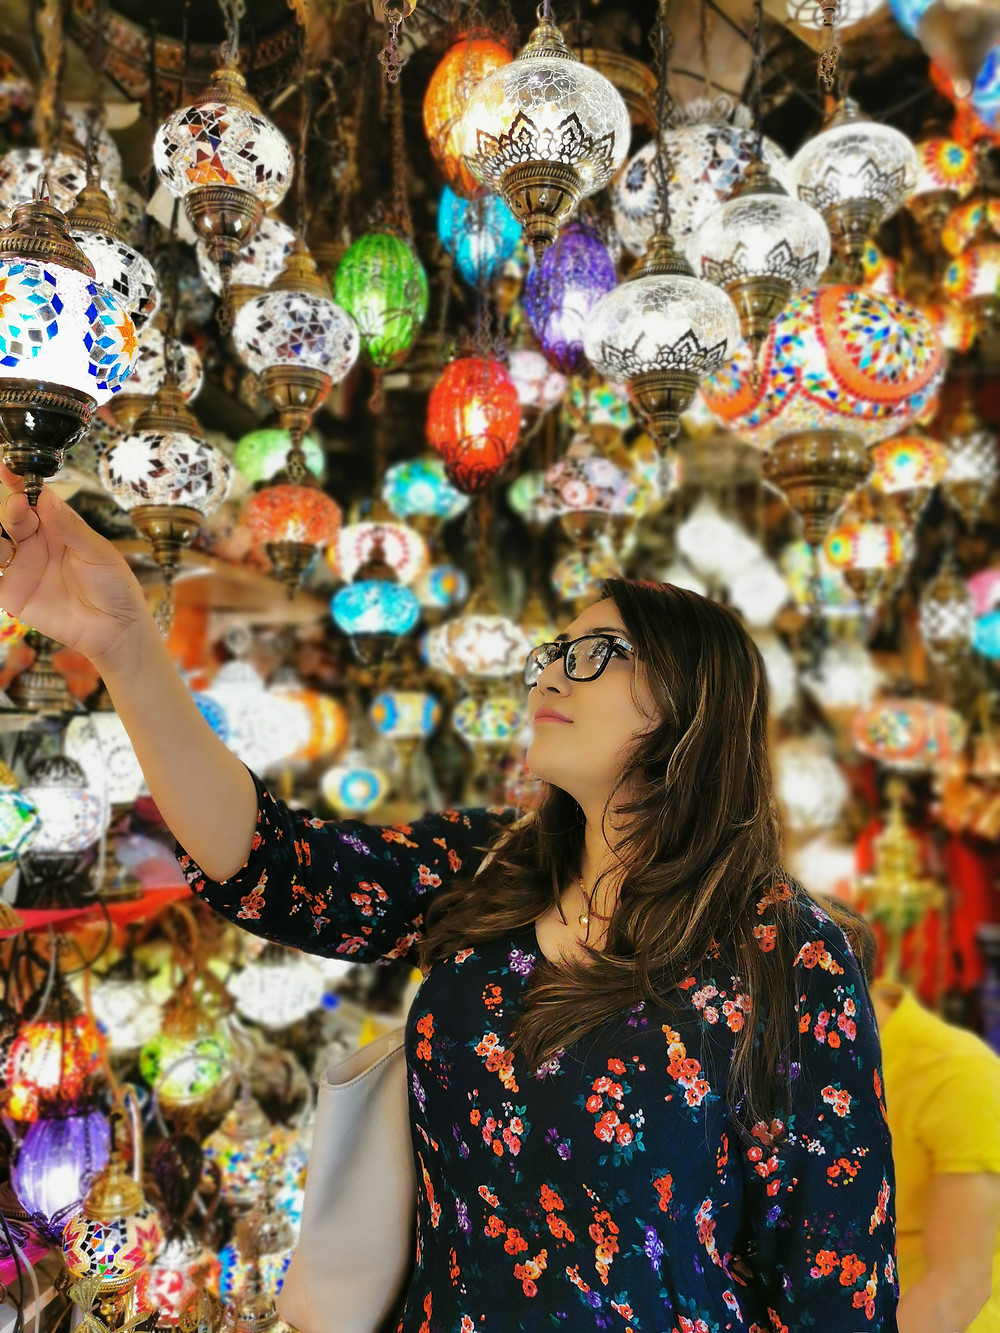 Lamps in the Grand Baazar Istanbul